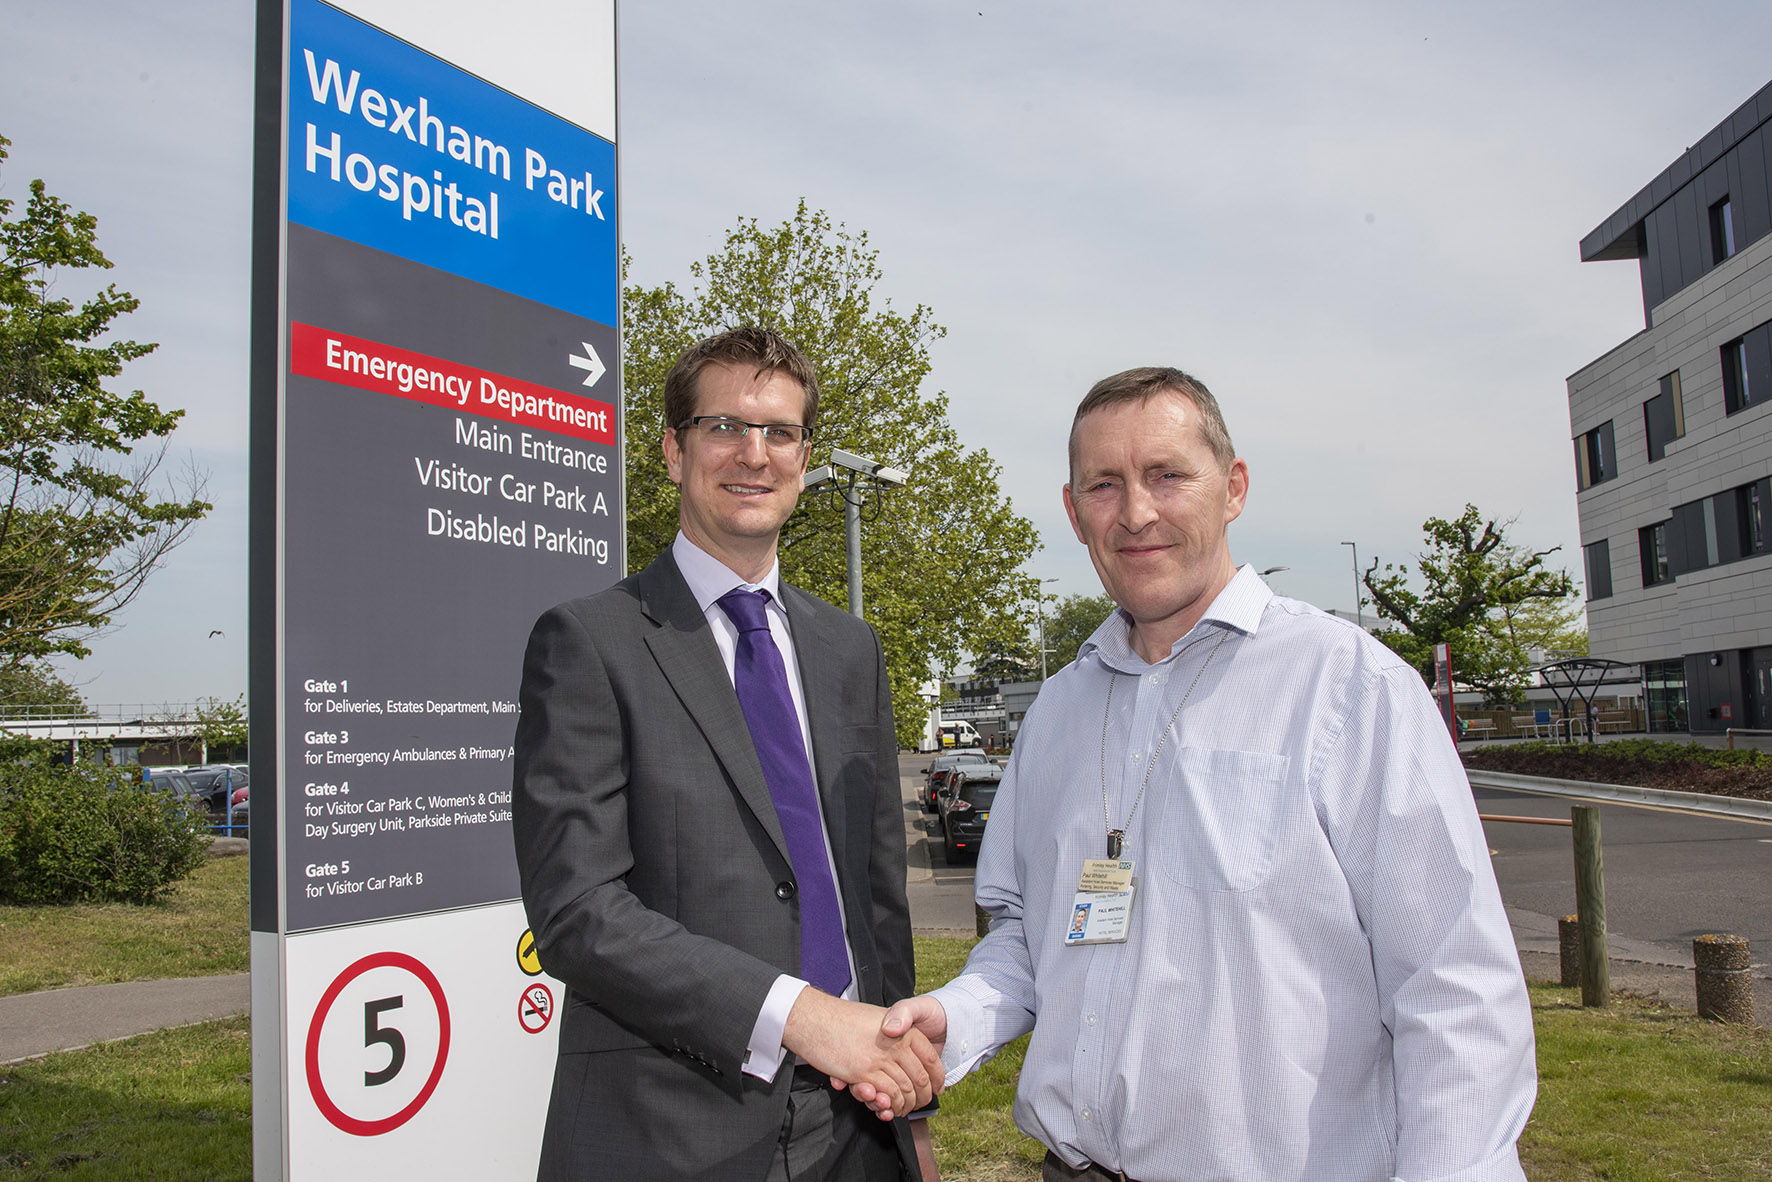 James Killick, Compliance Advisor at Grundon, pictured with Paul Whitehill, Assistant Hotel Services Manager at Wexham Park Hospital site